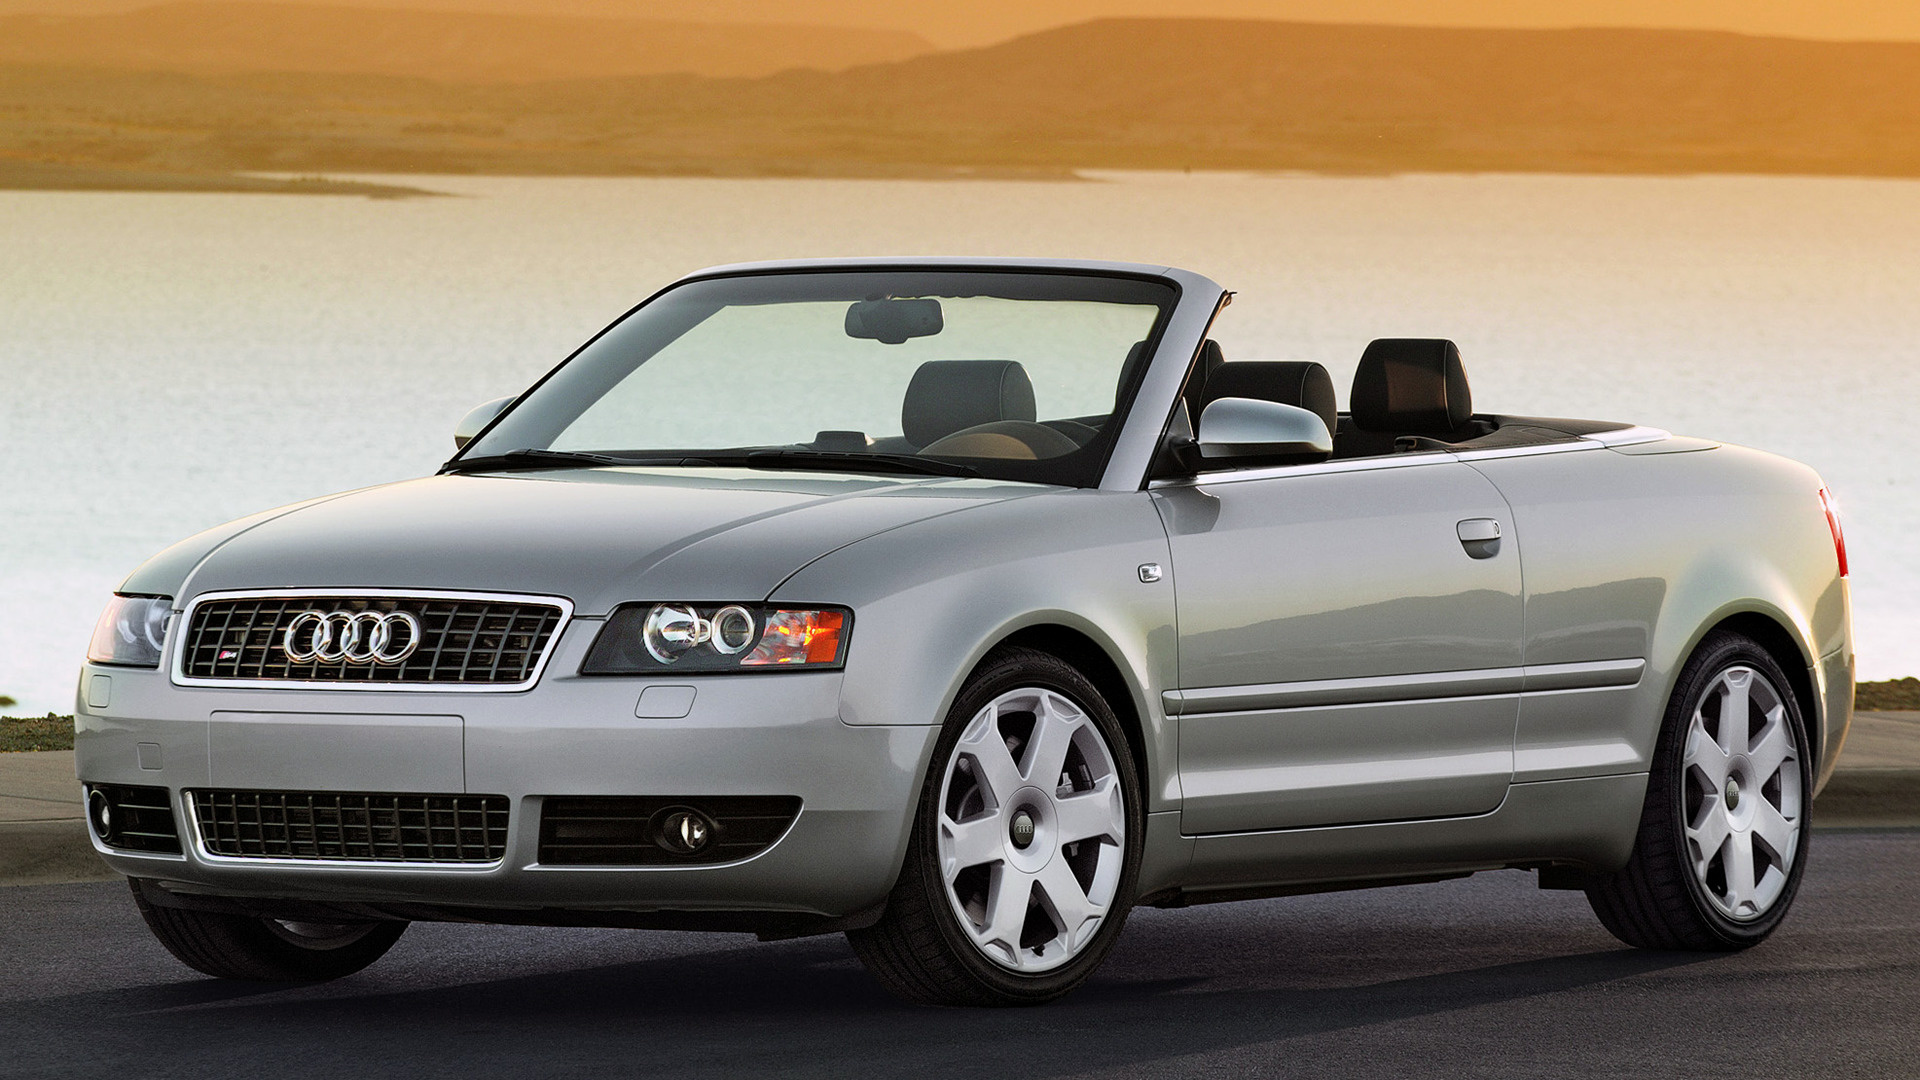 2004 Audi S4 Cabriolet (US) - Wallpapers and HD Images | Car